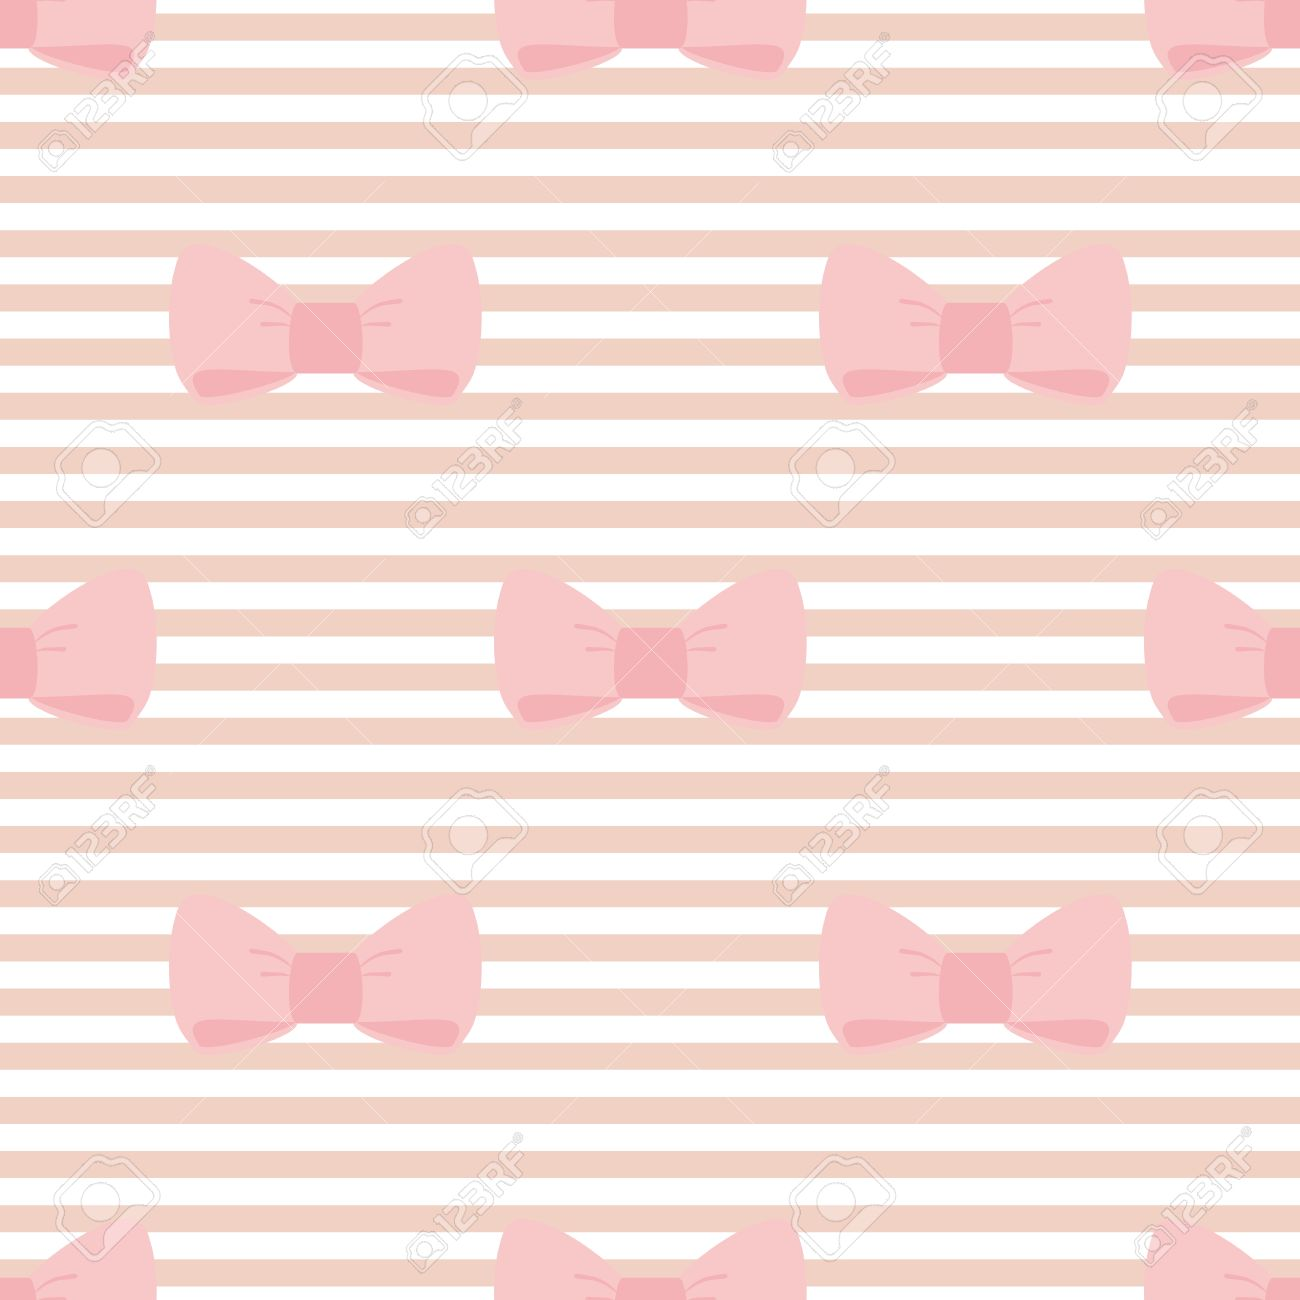 Seamless Vector Pattern With Pastel Pink Bows On A Light Brown